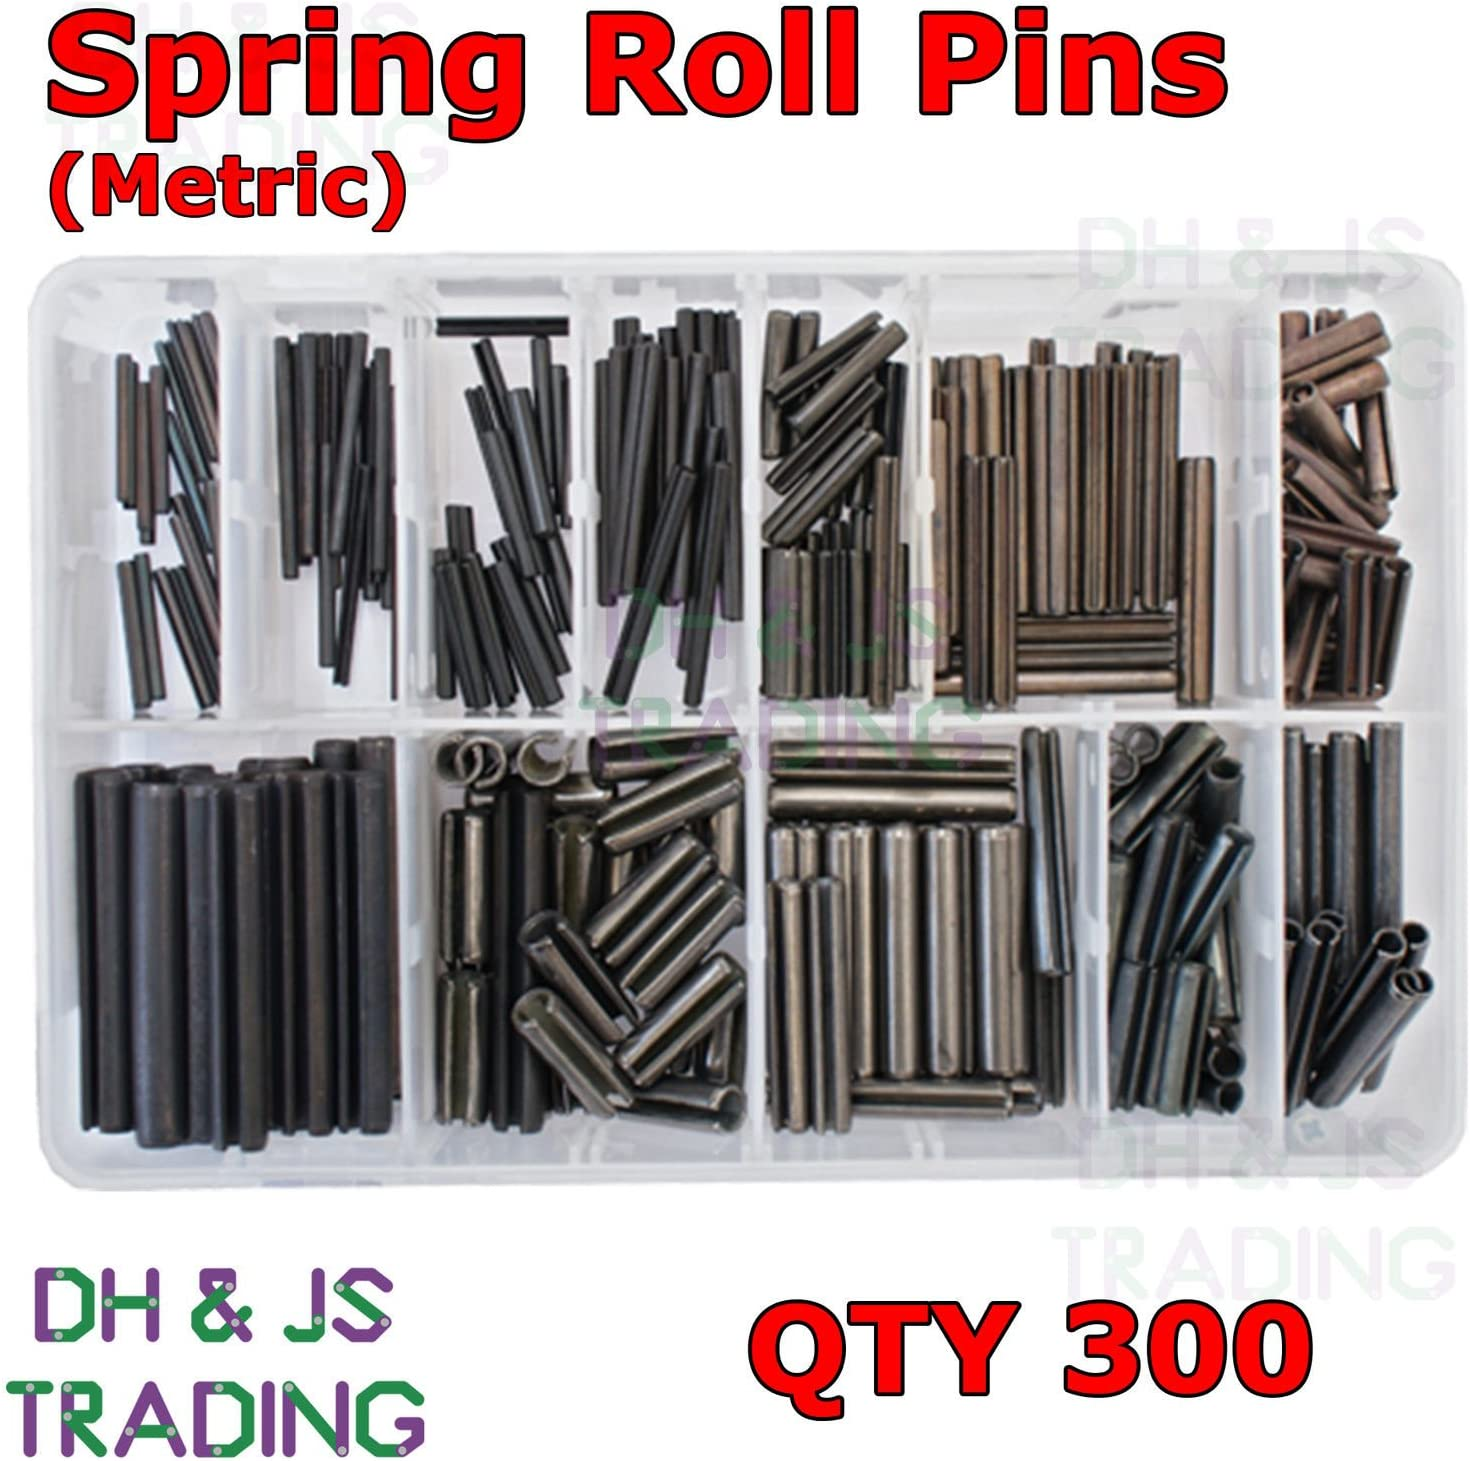 Metric M2 M3 M4 M5 M6 M8 Slotted Tension Assorted Box of Spring Roll Pins 300